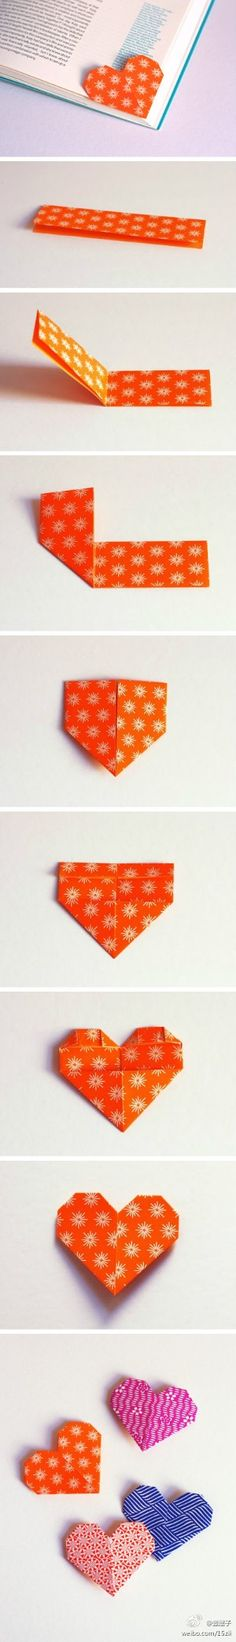 Origami- Origami sabine v.Appeldorn sabinevappeldor Kreatives Origami sabine v.Appeldorn Origami sabinevappeldor Origami Kreatives Origami sabine v. Kids Crafts, Cute Crafts, Diy And Crafts, Craft Projects, Arts And Crafts, Easy Crafts, Creative Crafts, Origami Diy, Origami Paper